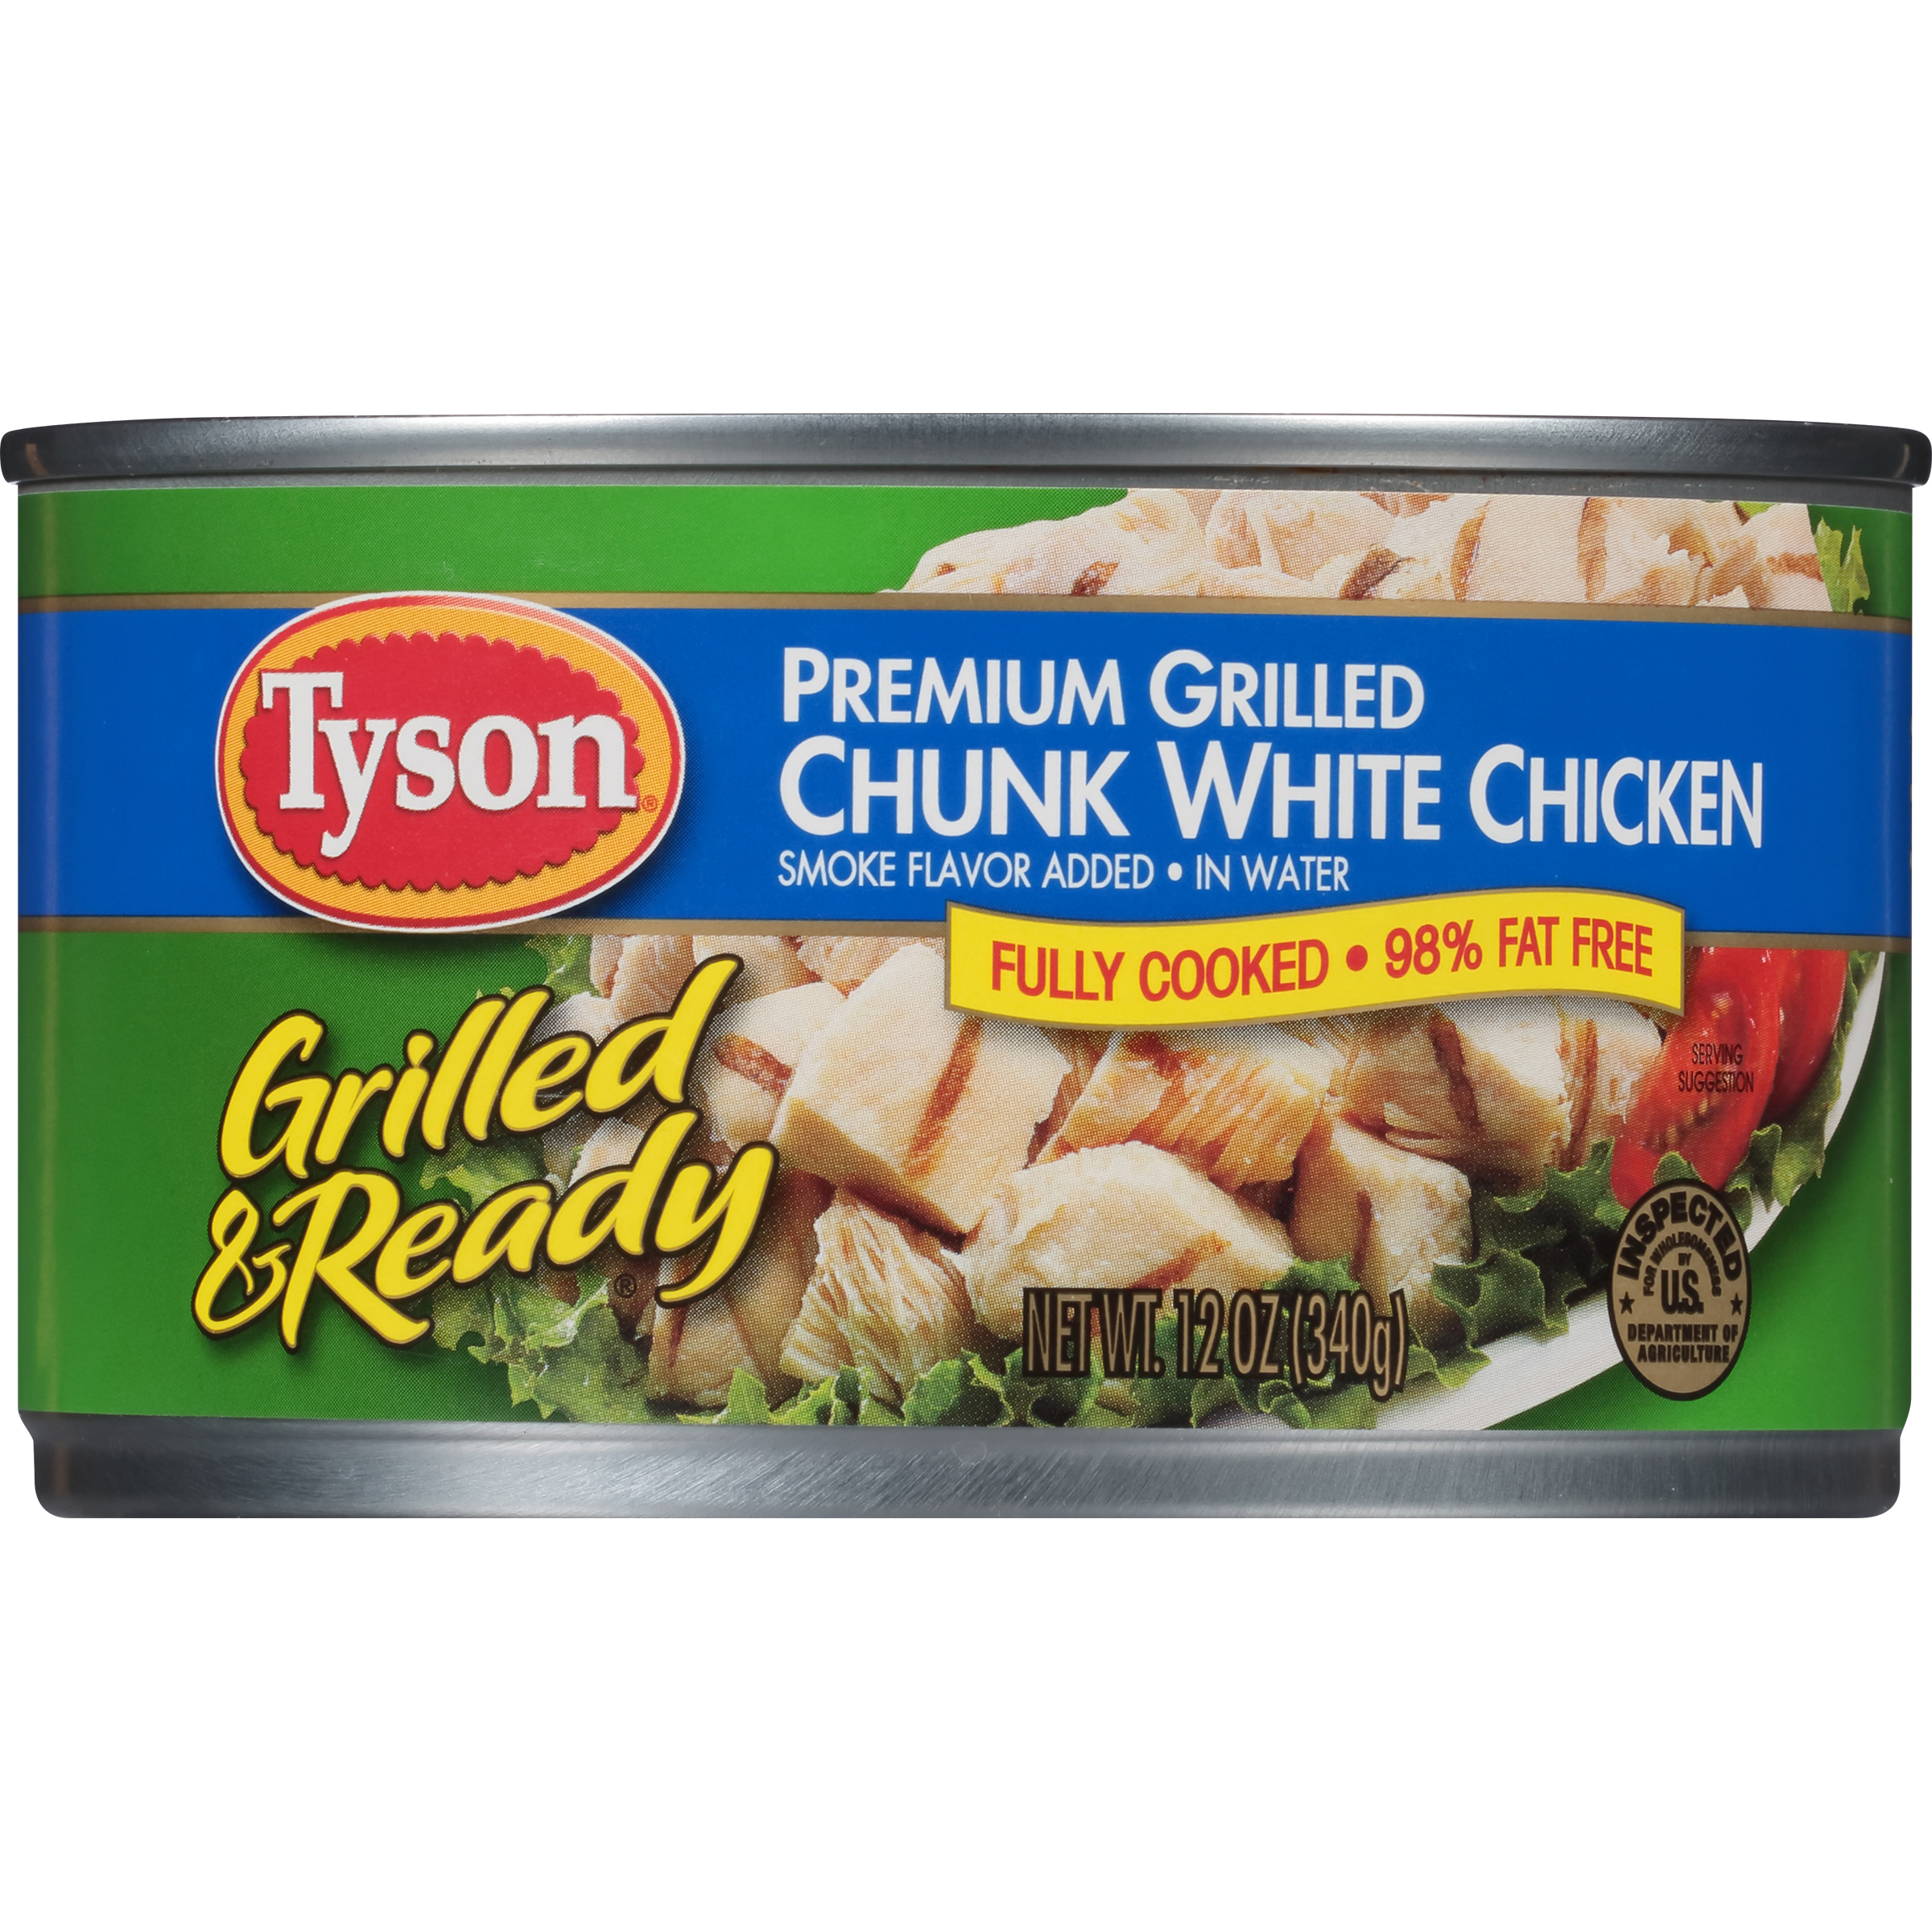 Tyson® Grilled & Ready® Premium Grilled Chunk White Chicken Breast, 12 oz.